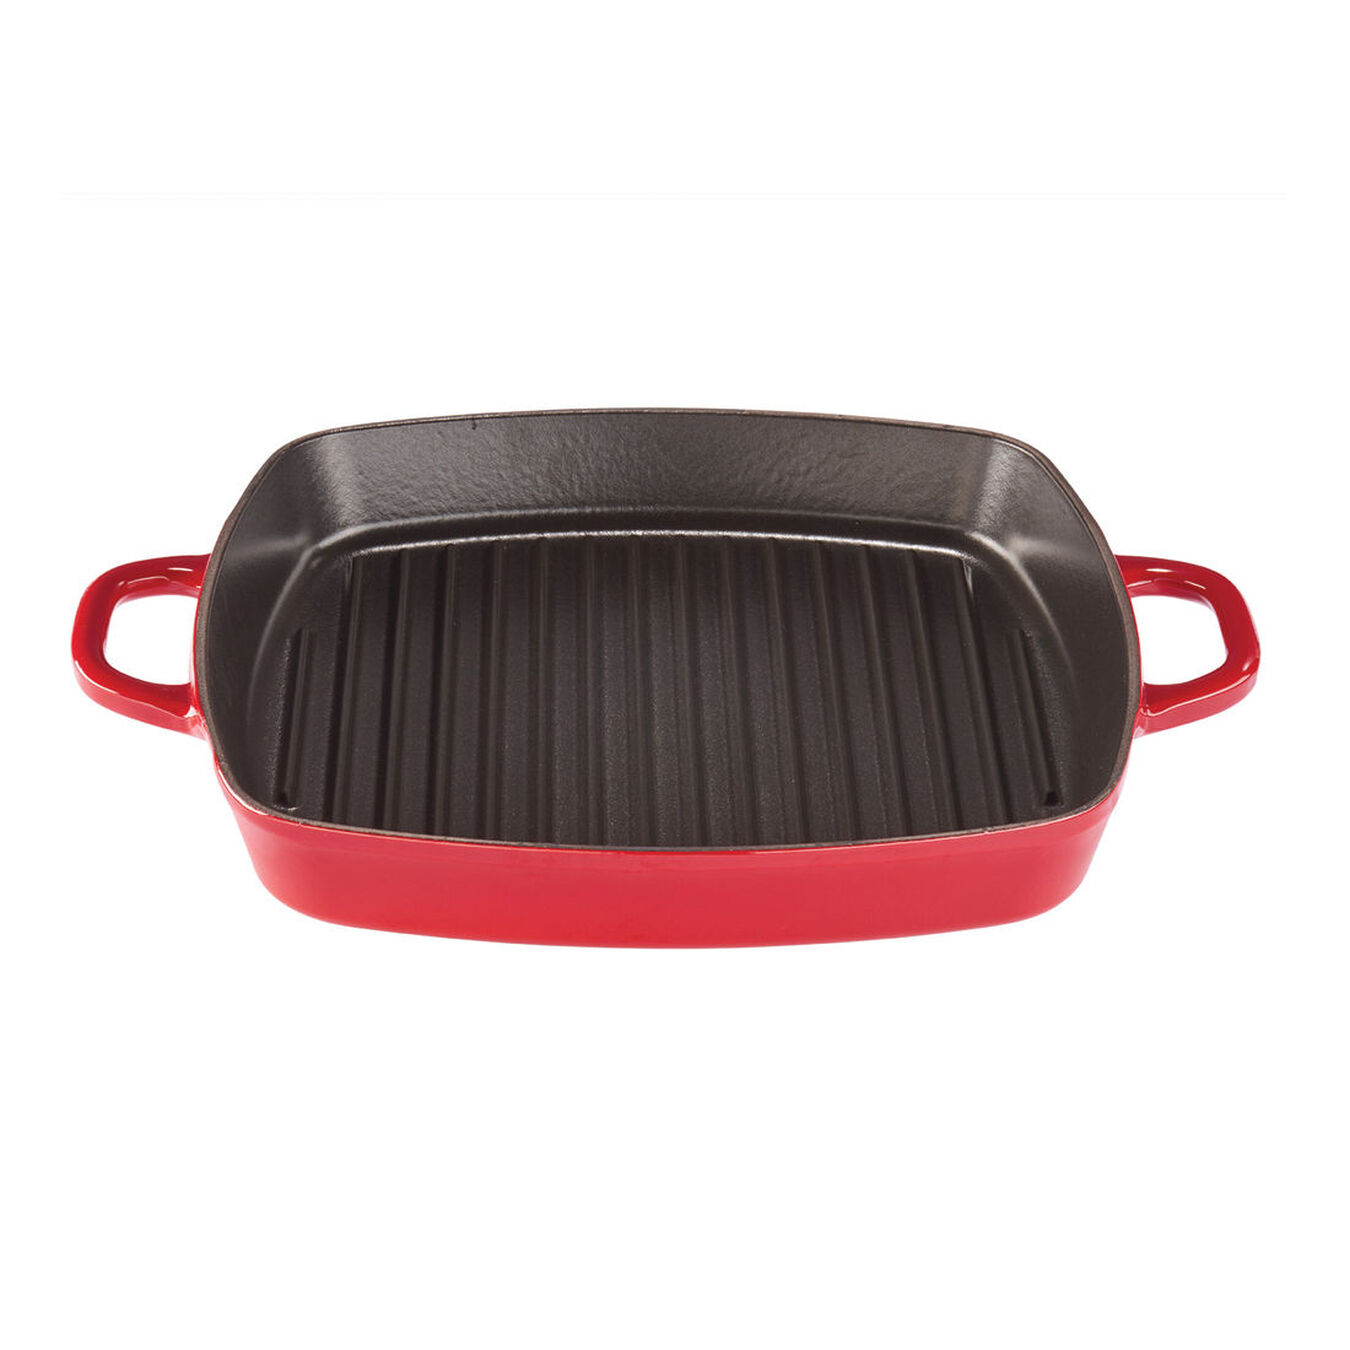 12-inch Square Grill Pan - Visual Imperfections - Cherry,,large 1